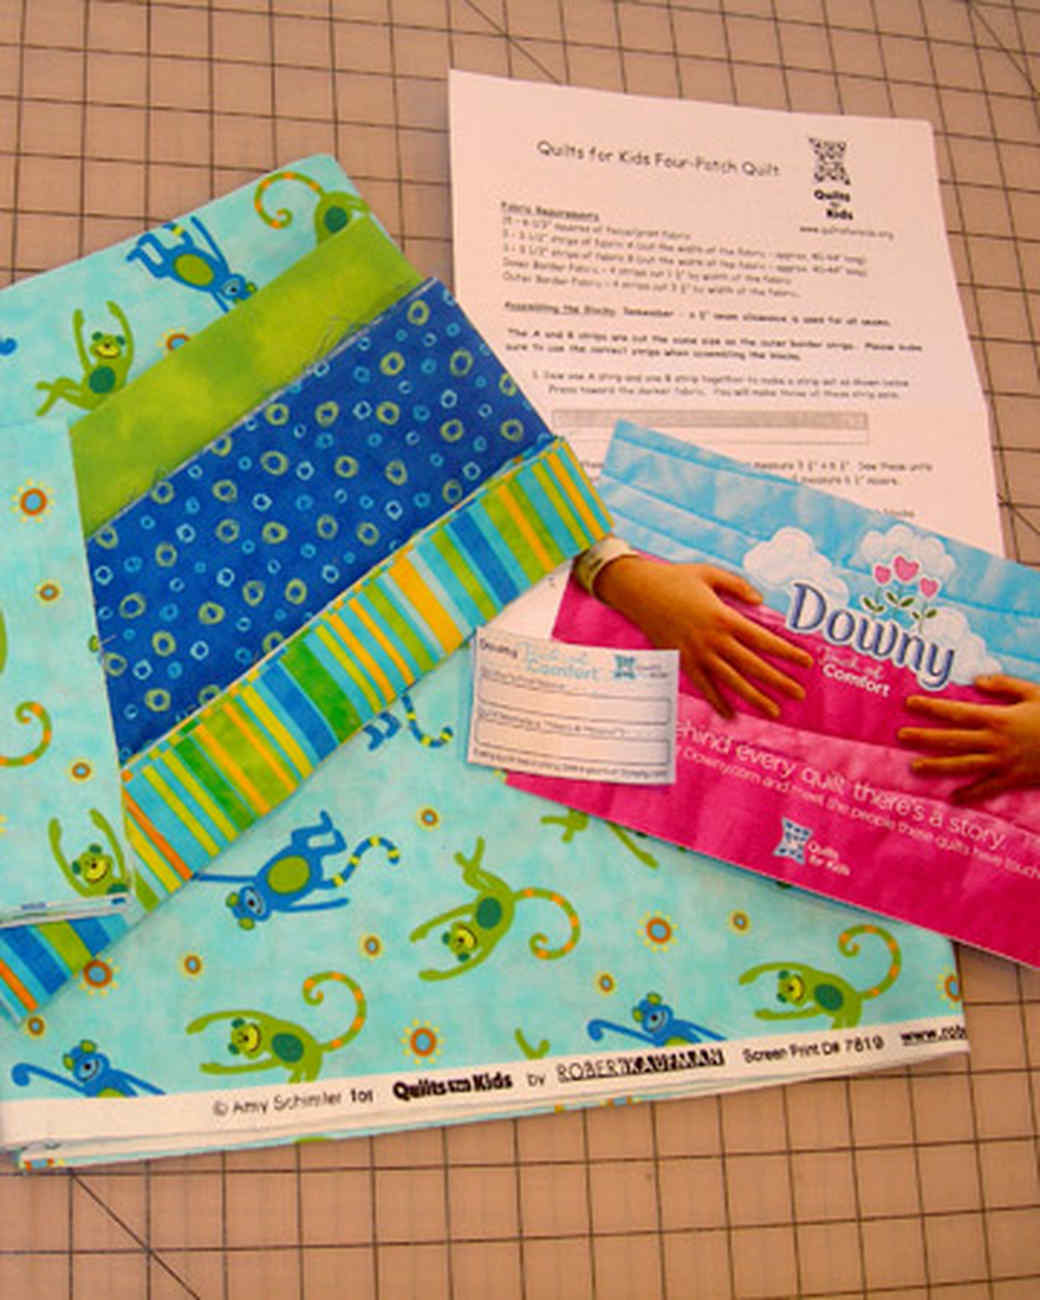 downy_creating_4_patch_quilt_kit_012.jpg